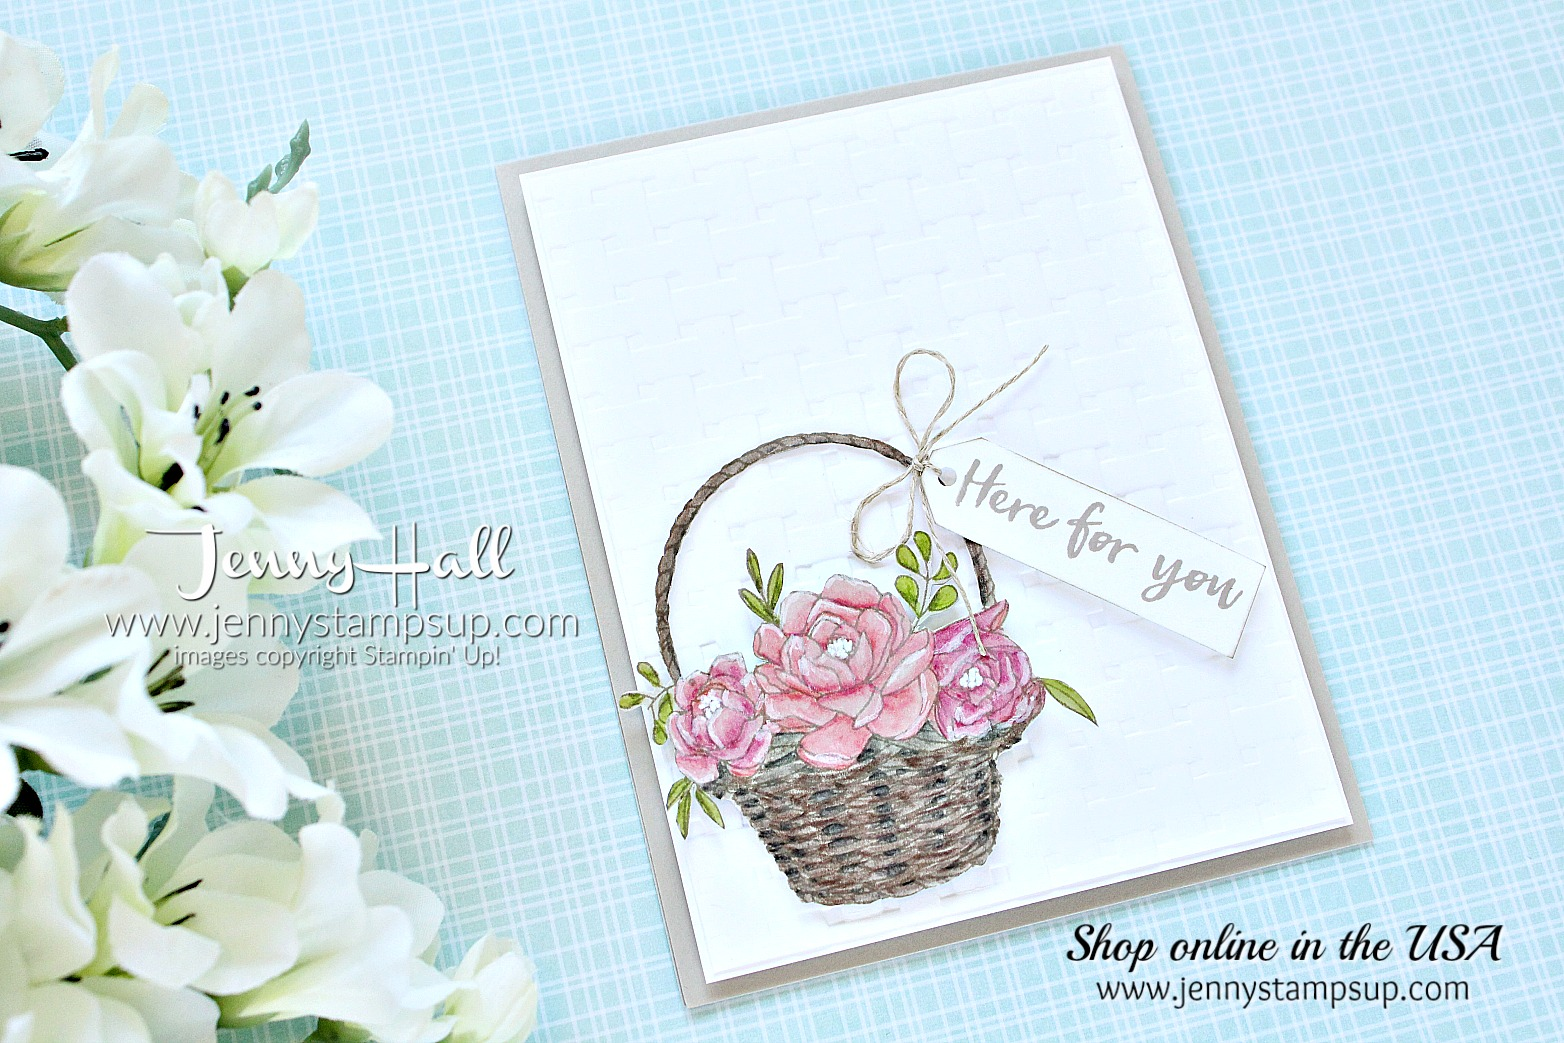 Blossoming Basket card created by Jenny Hall at www.jennystampsup.com for #cardmaking #videotutorial #processvideo #blossomingbasket #basketweaveembossing #cascards #cleanandsimplecards #cardmakingchallenge #jennyhalldesign #jennystampsup #jennyhallstampinup #coloringvideo #youtuber #artsandcrafts #papercraft #watercolor #lifestyle